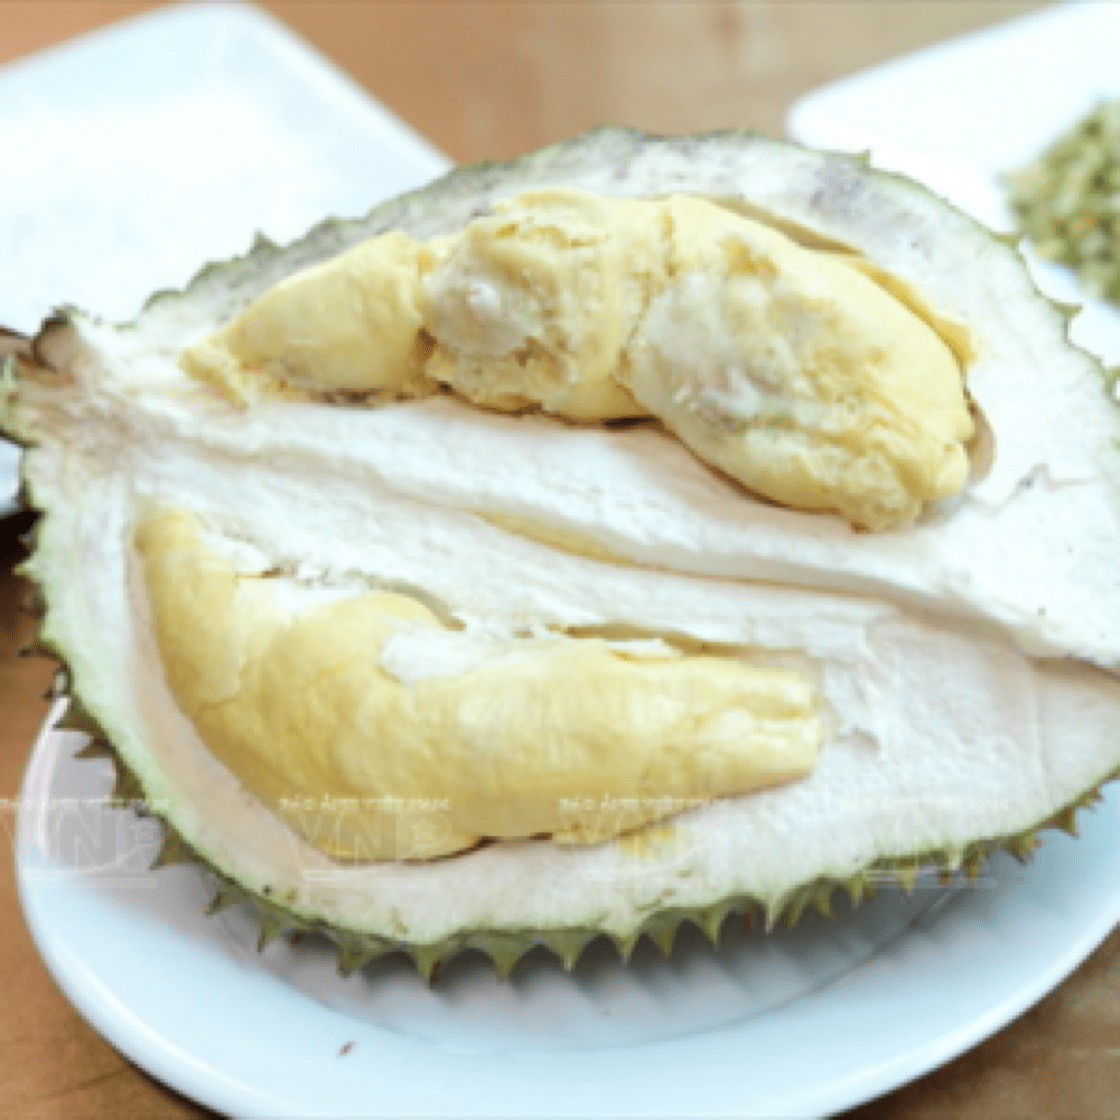 Durian Guide: Last Chance To Catch The First Durian Season Of 2018